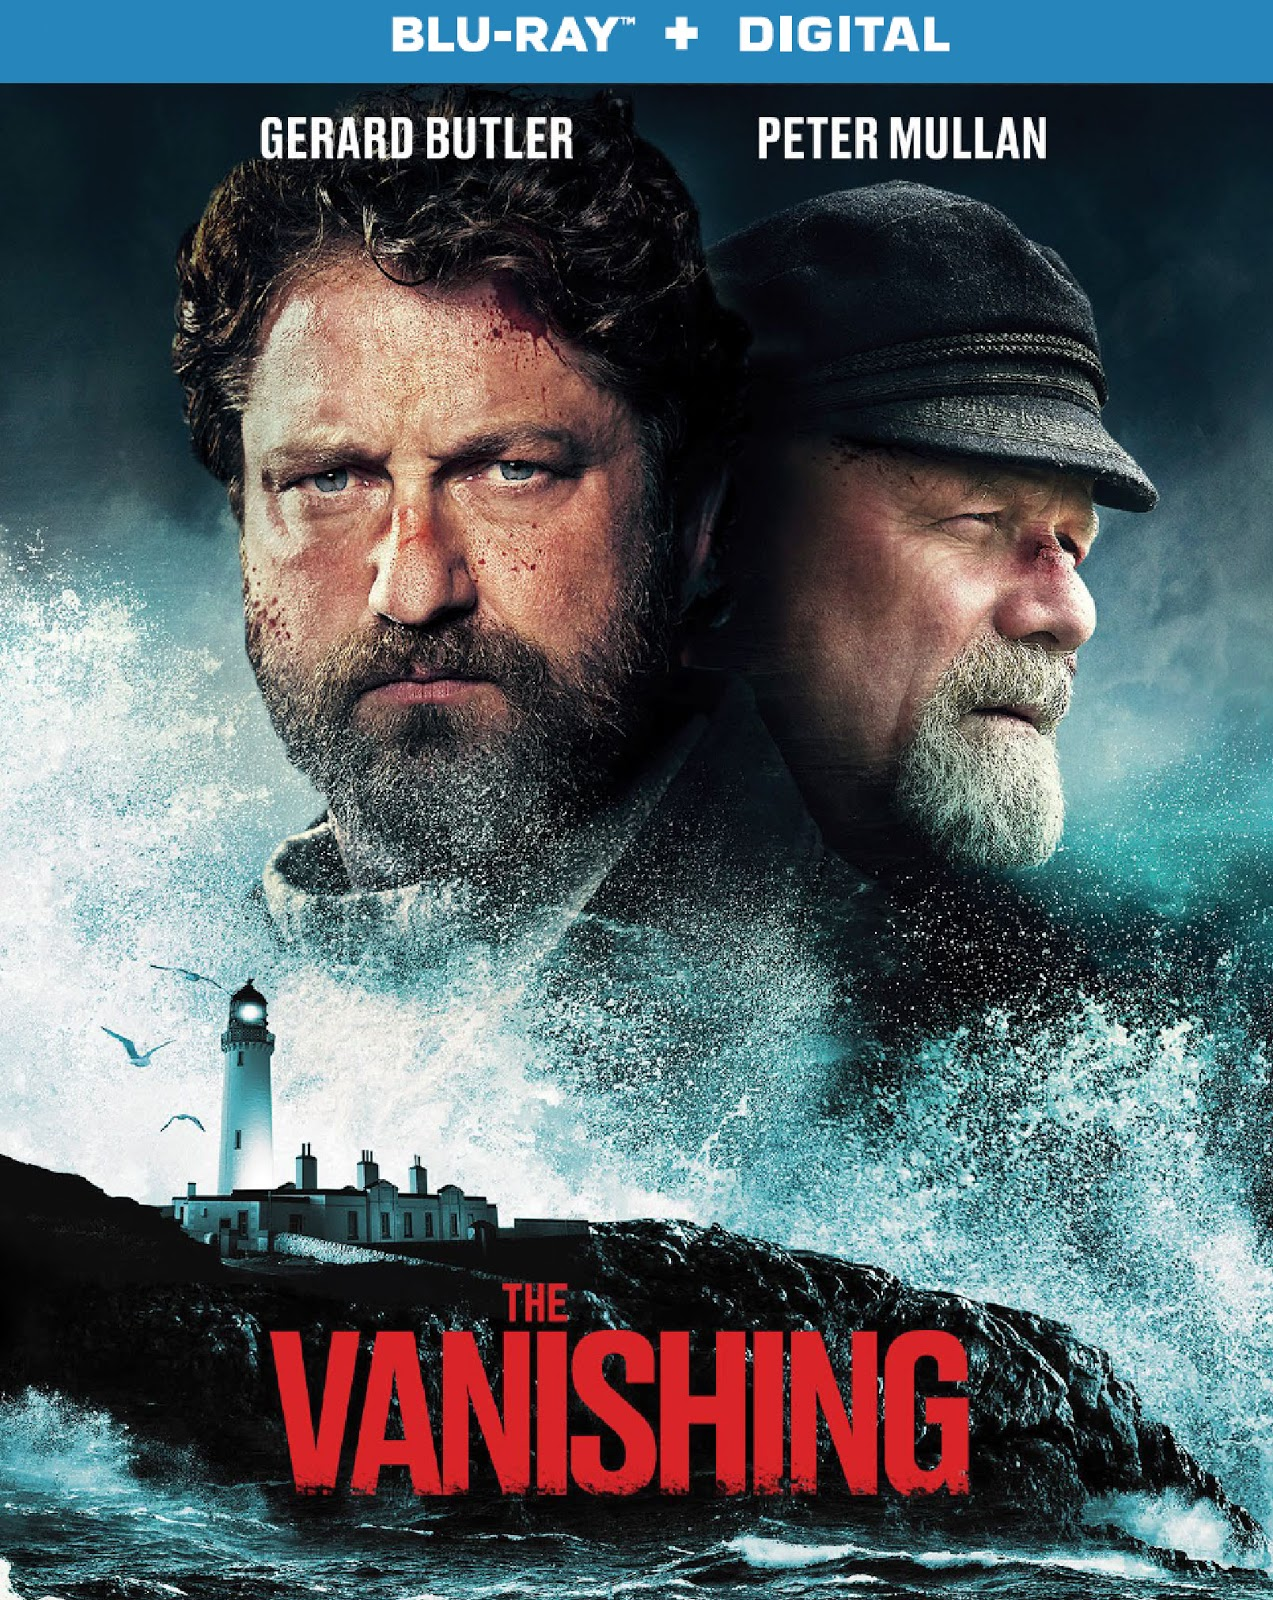 The Vanishing Releasing on Blu-Ray, and DVD 3/5 - Bobs Movie